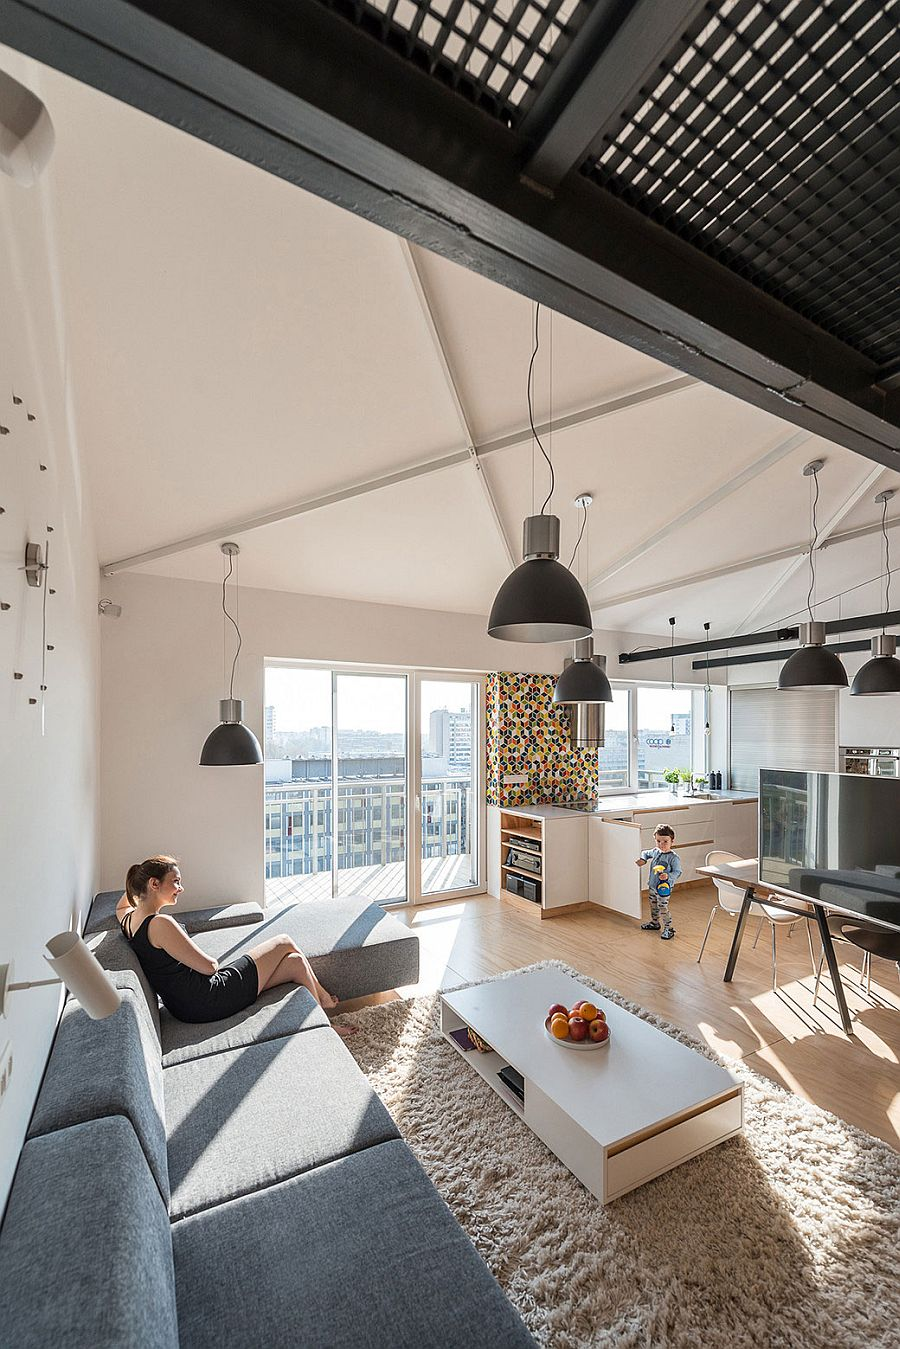 Gray industrial lighting adds to the appeal of the living zone